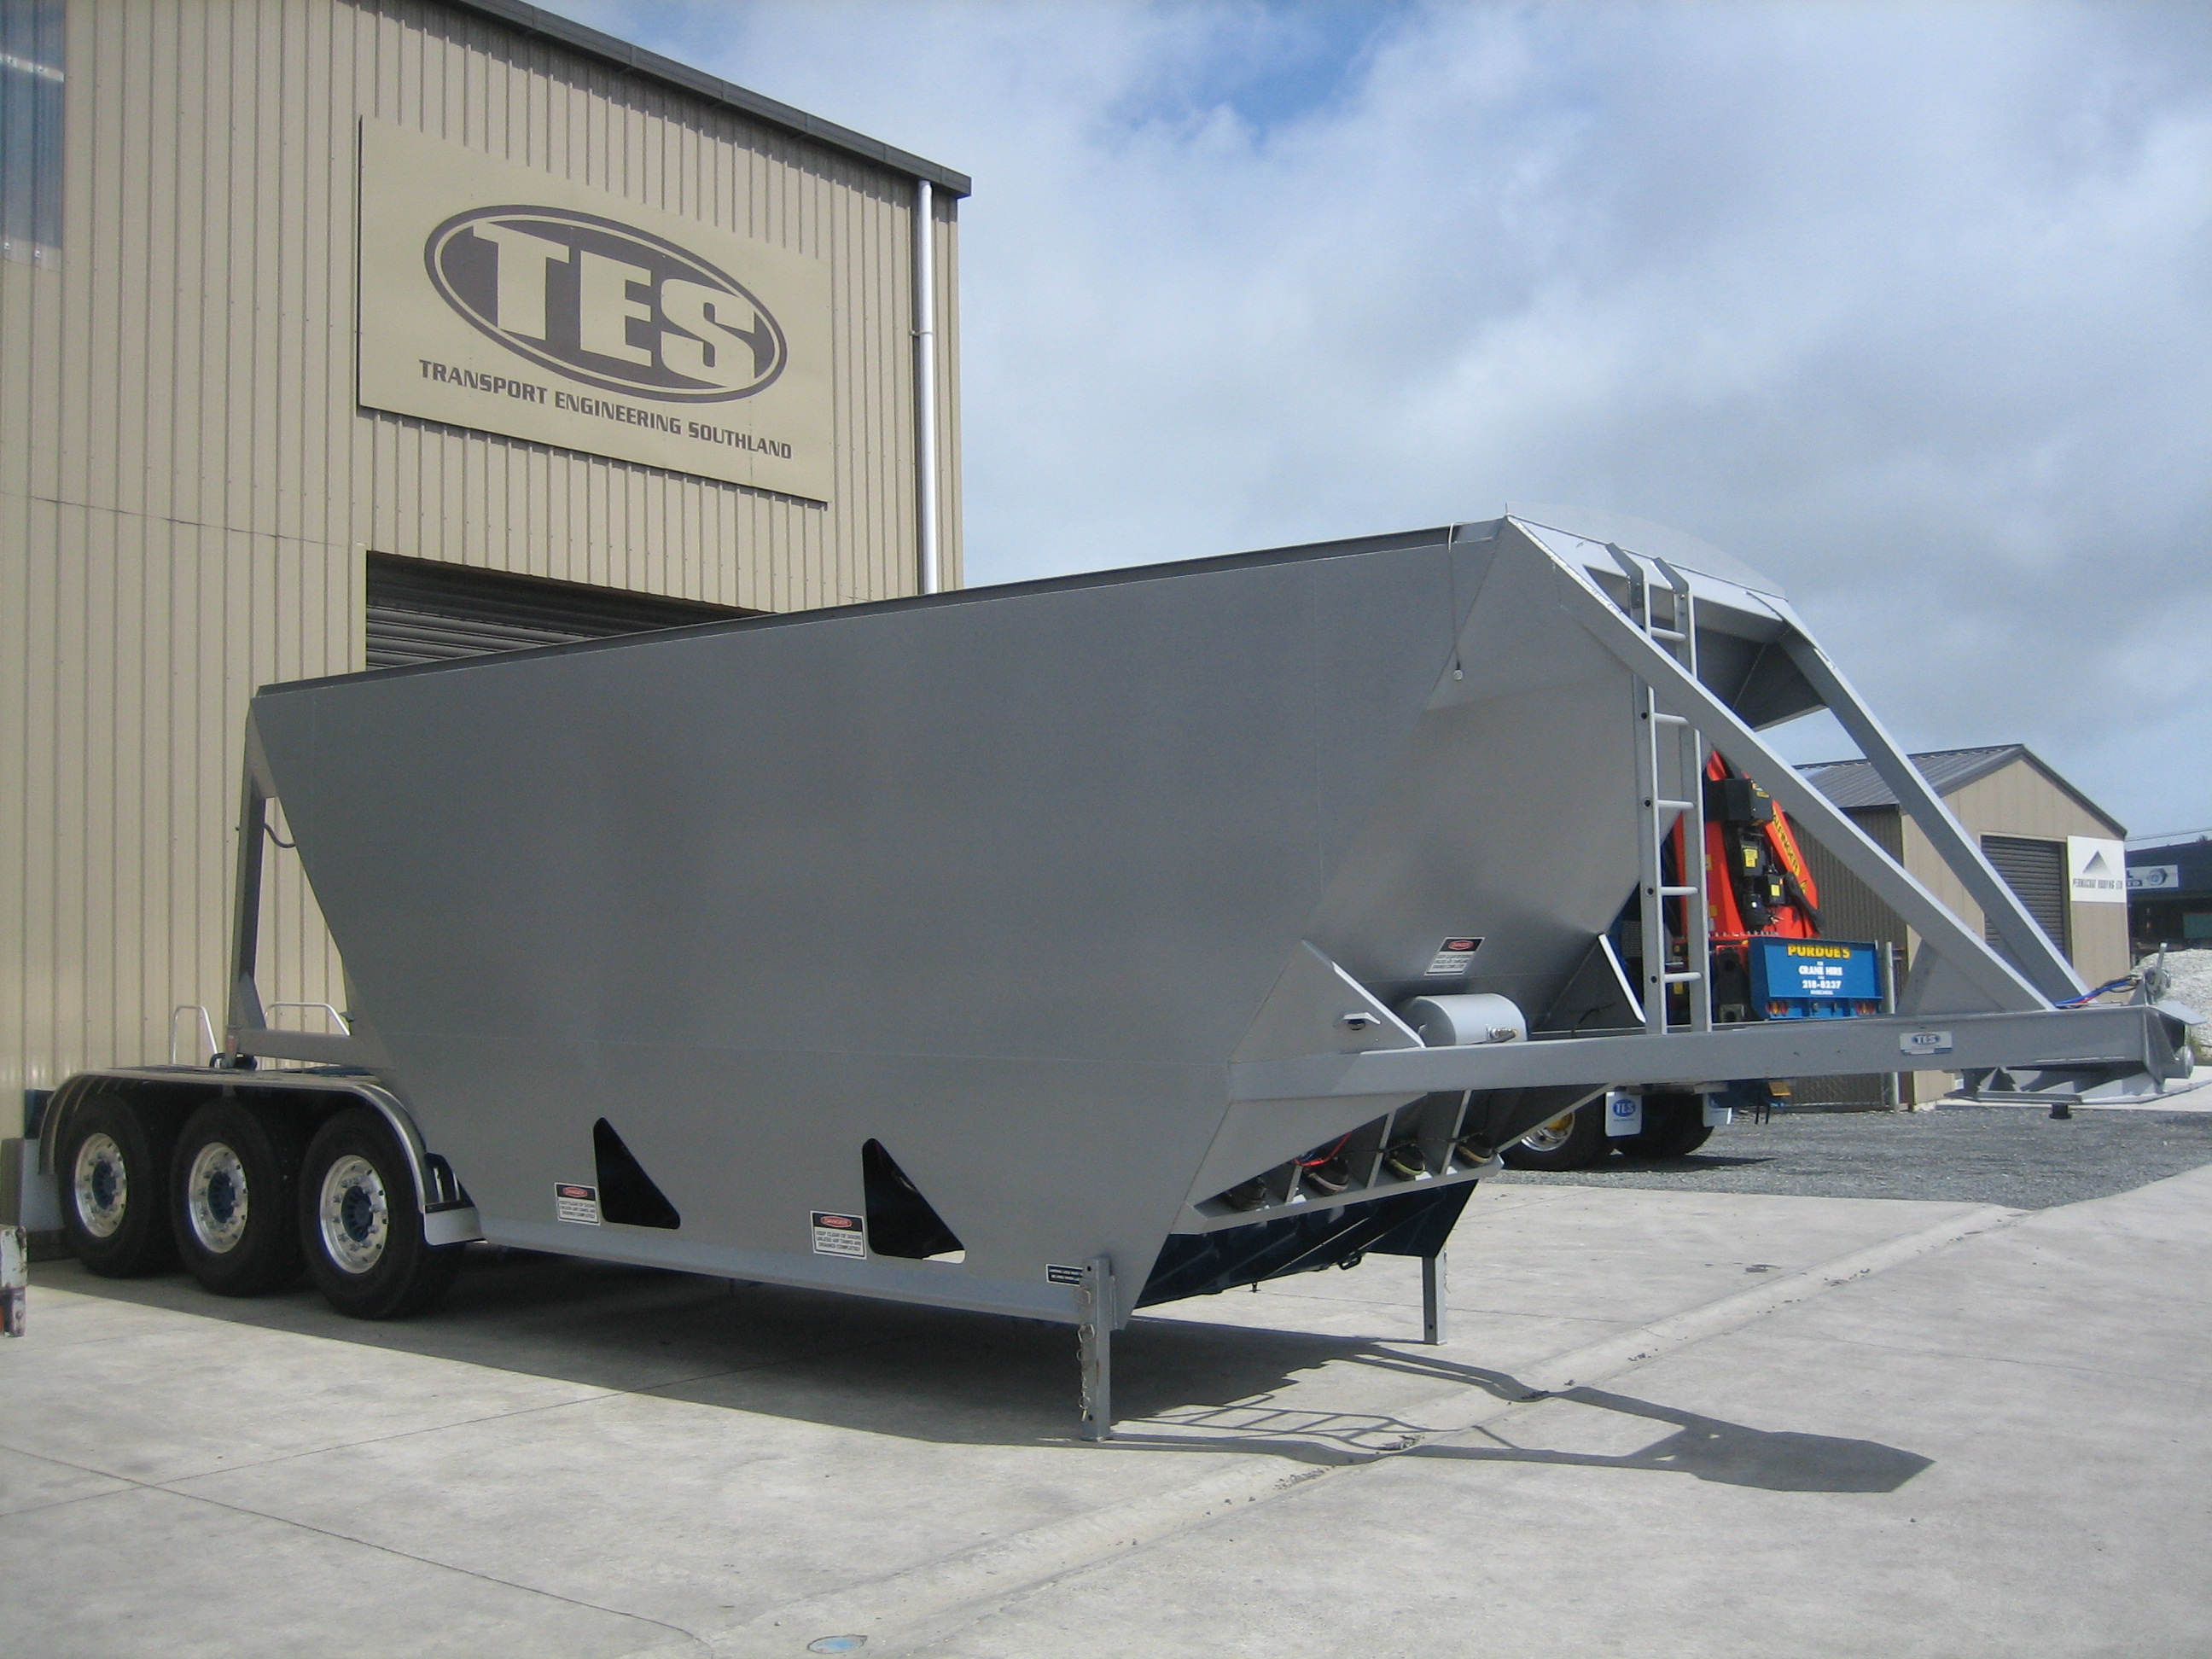 TES - Transport Engineering Southland | Belly/Bottom Dumper - Custom